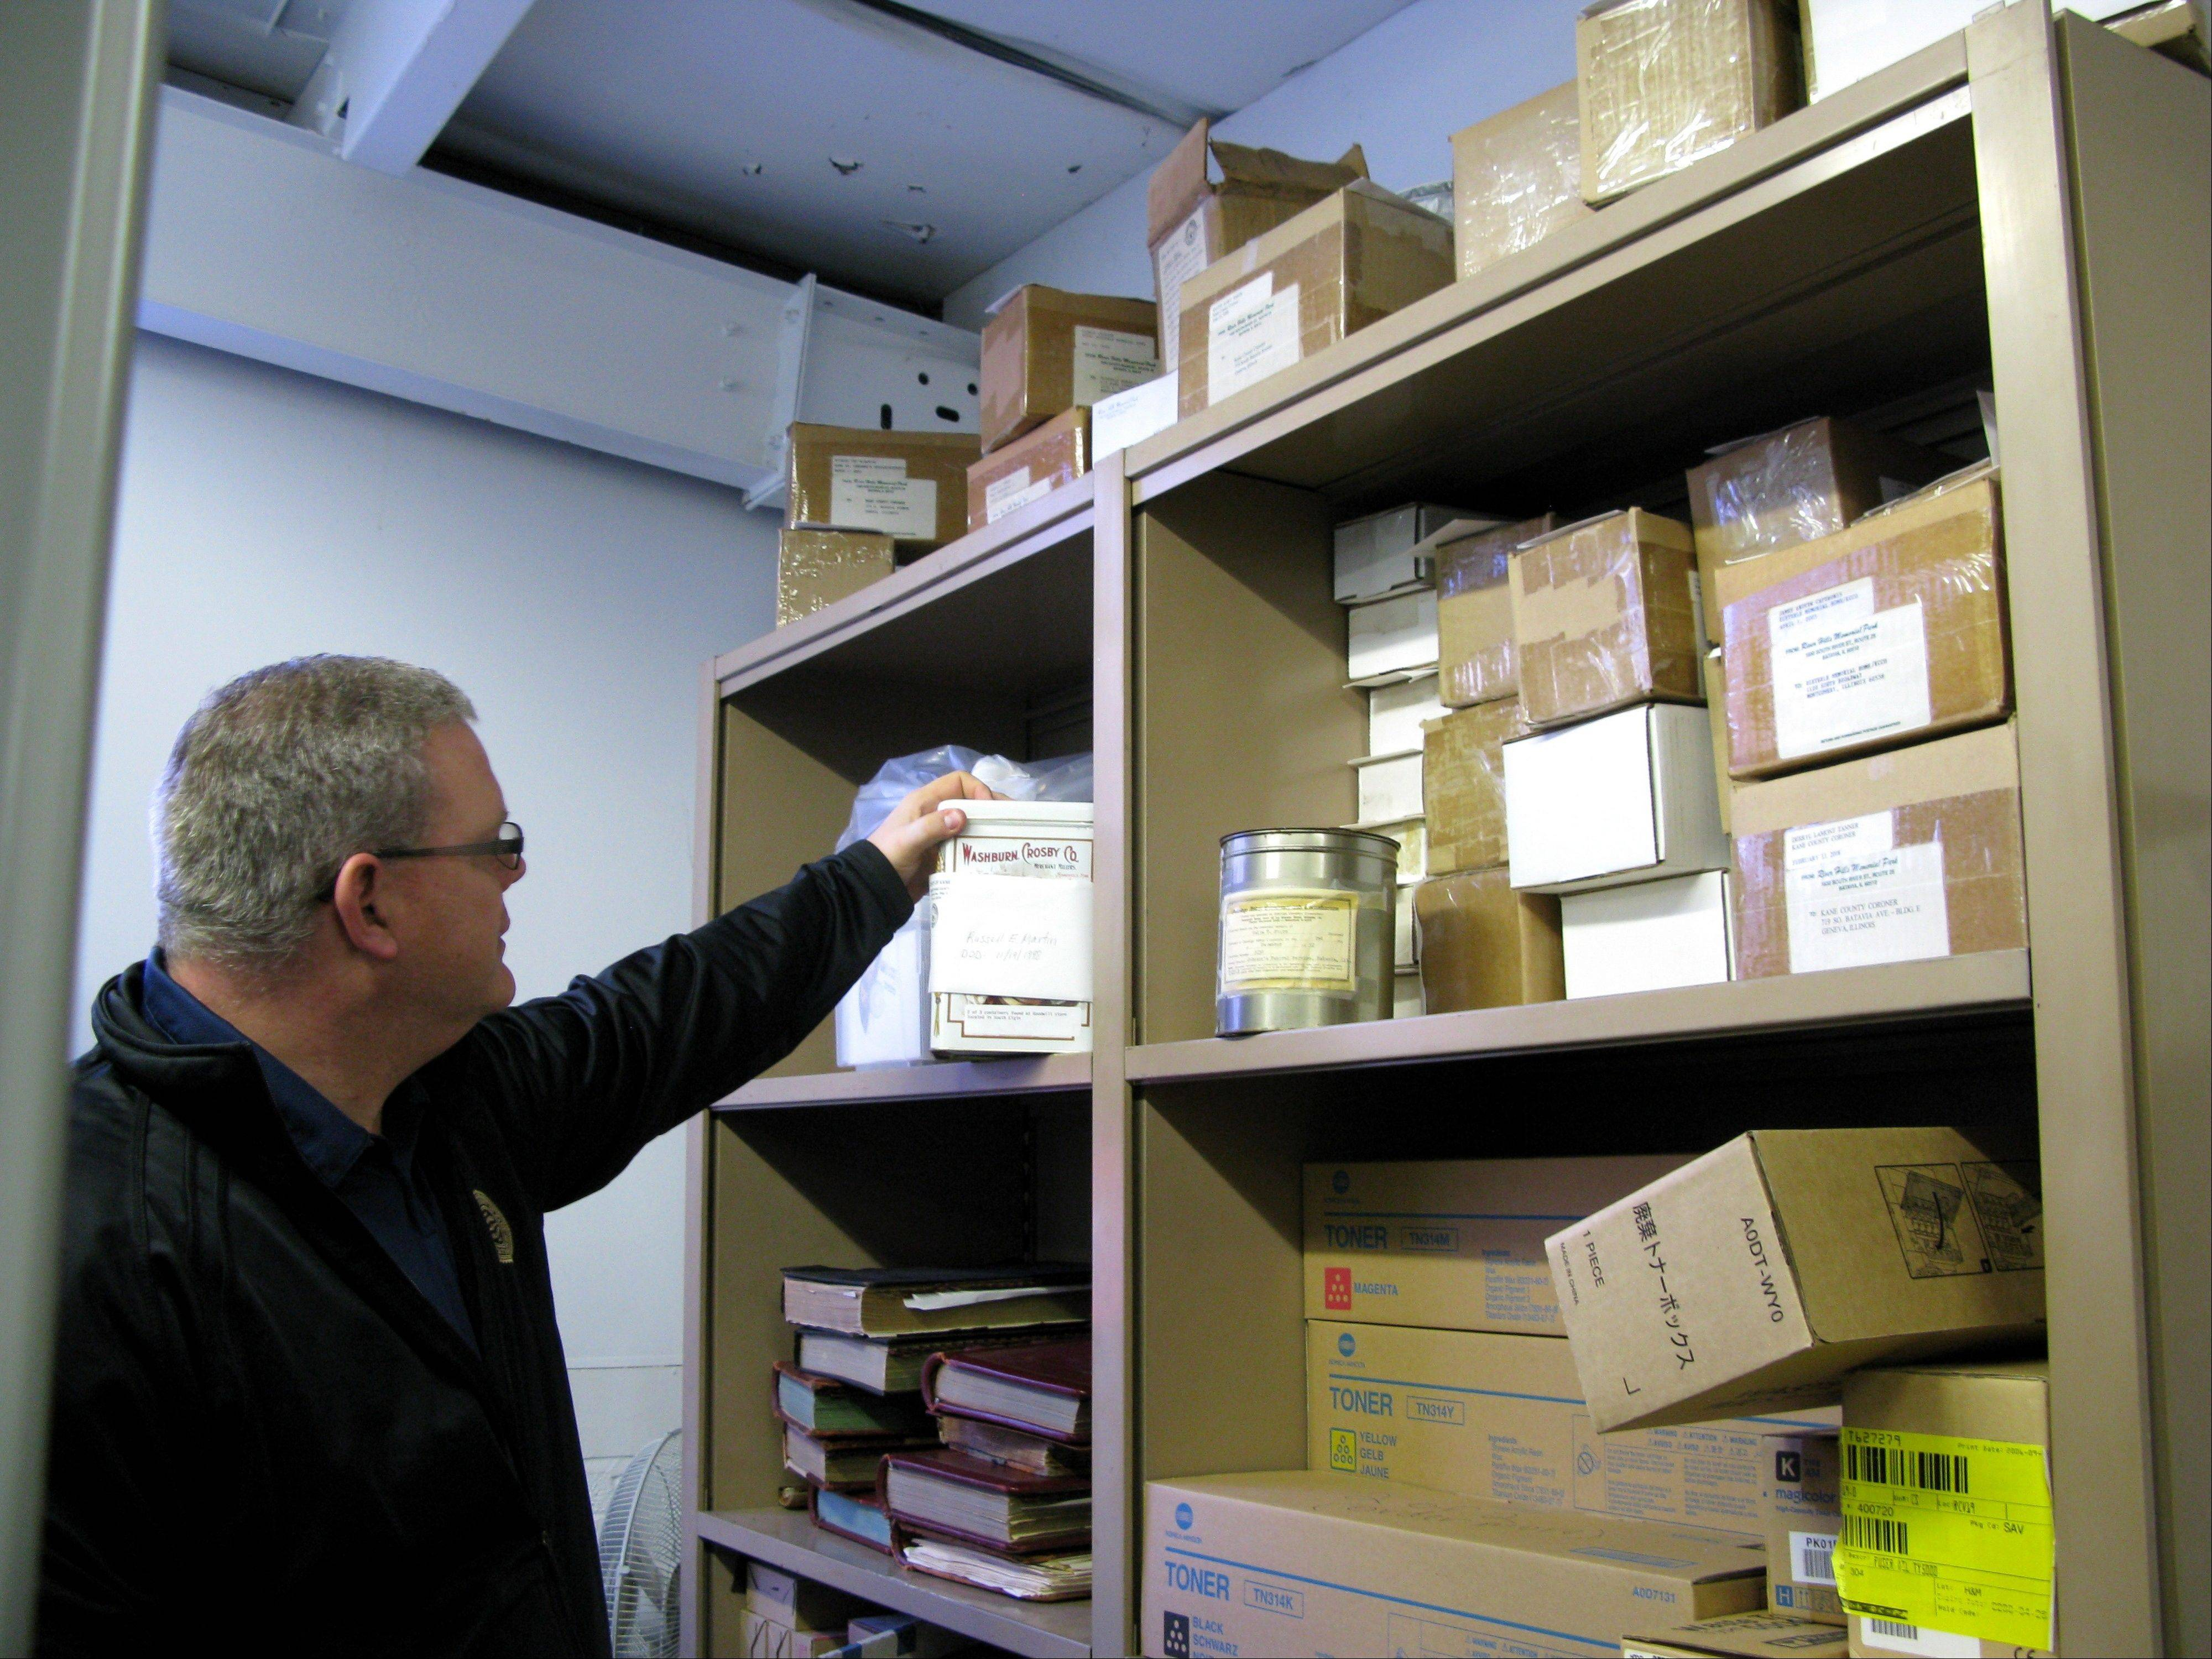 Kane County Coroner Rob Russell last week pointed out 47 packages and containers of cremated human remains stored in the same place as office supplies and holiday decorations. Russell is calling on county officials to find a proper final resting place for the ashes.